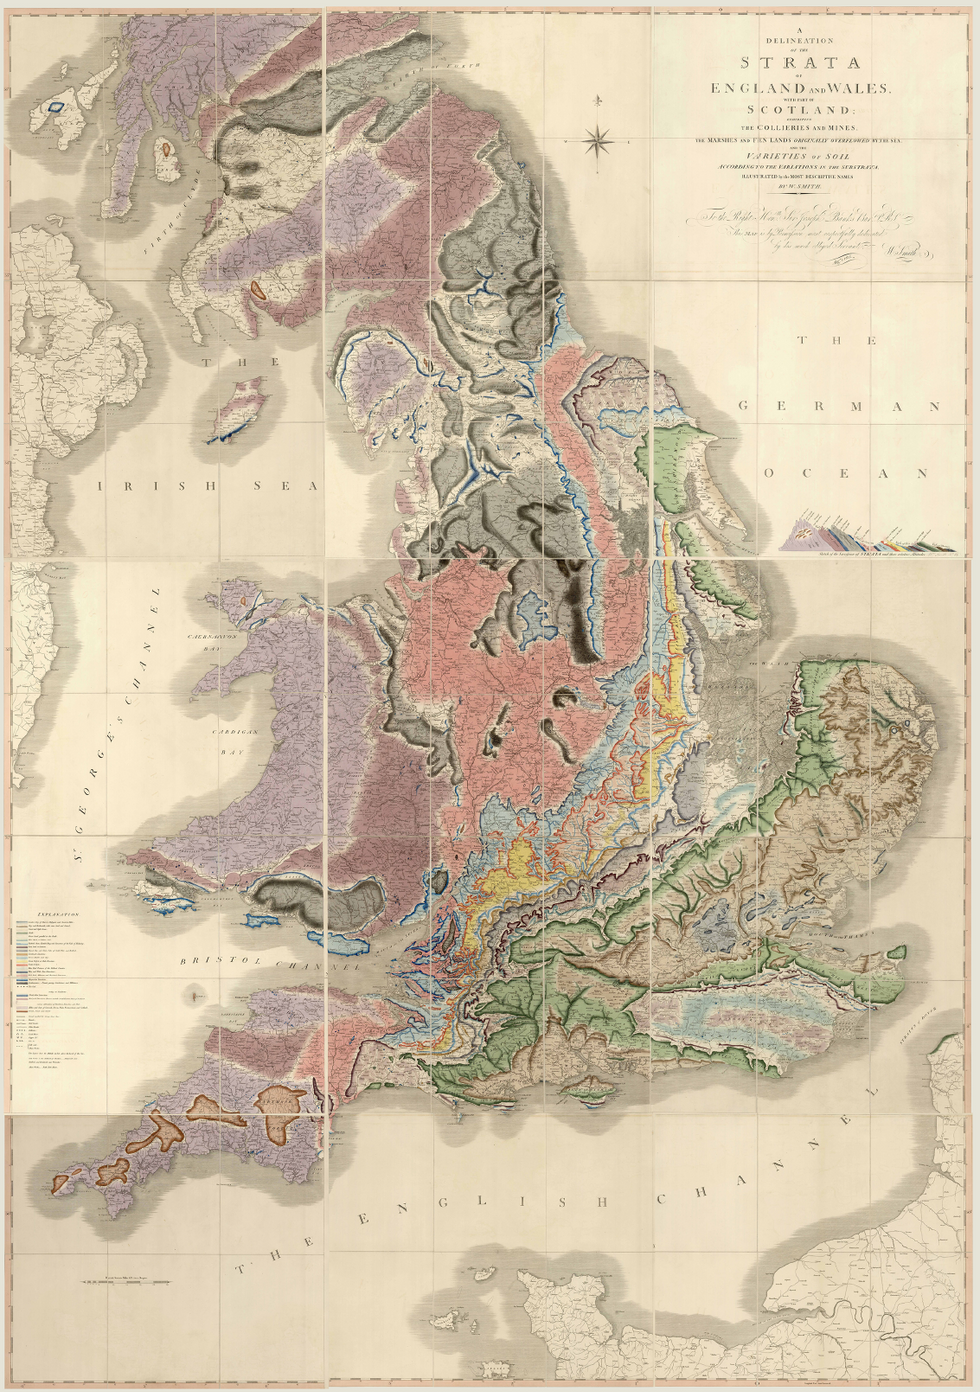 'A Delineation of the Strata of England and Wales, with Part of Scotland; Exhibiting the Collieries and Mines, the Marshes and Fen Lands Originally Overflowed by the Sea, and the Varieties of Soil According to the Variations in the Substrata, Illustrated by the Most Descriptive Names'.